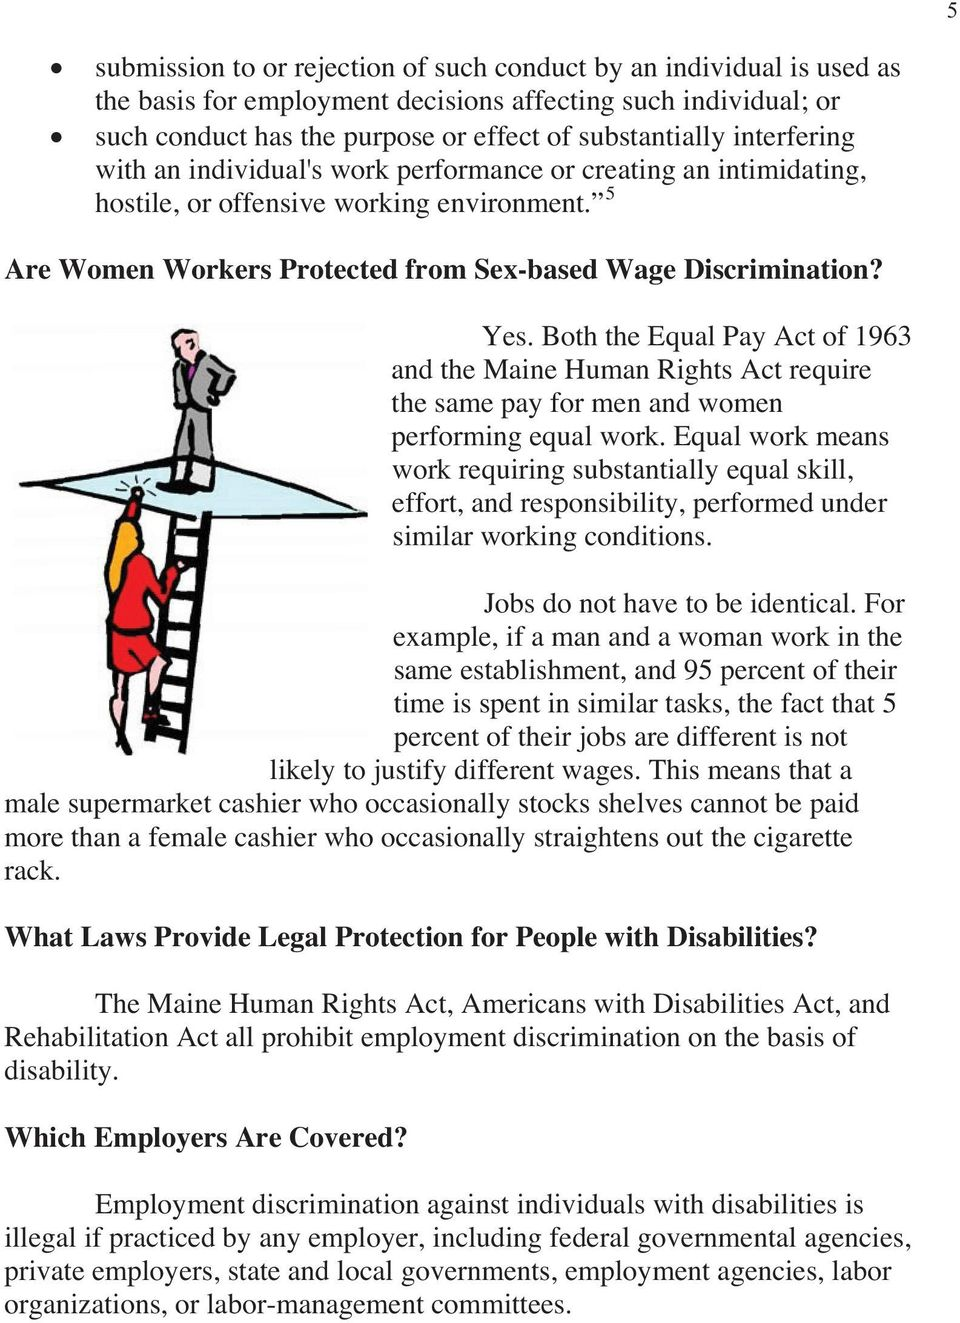 Both the Equal Pay Act of 1963 and the Maine Human Rights Act require the same pay for men and women performing equal work.